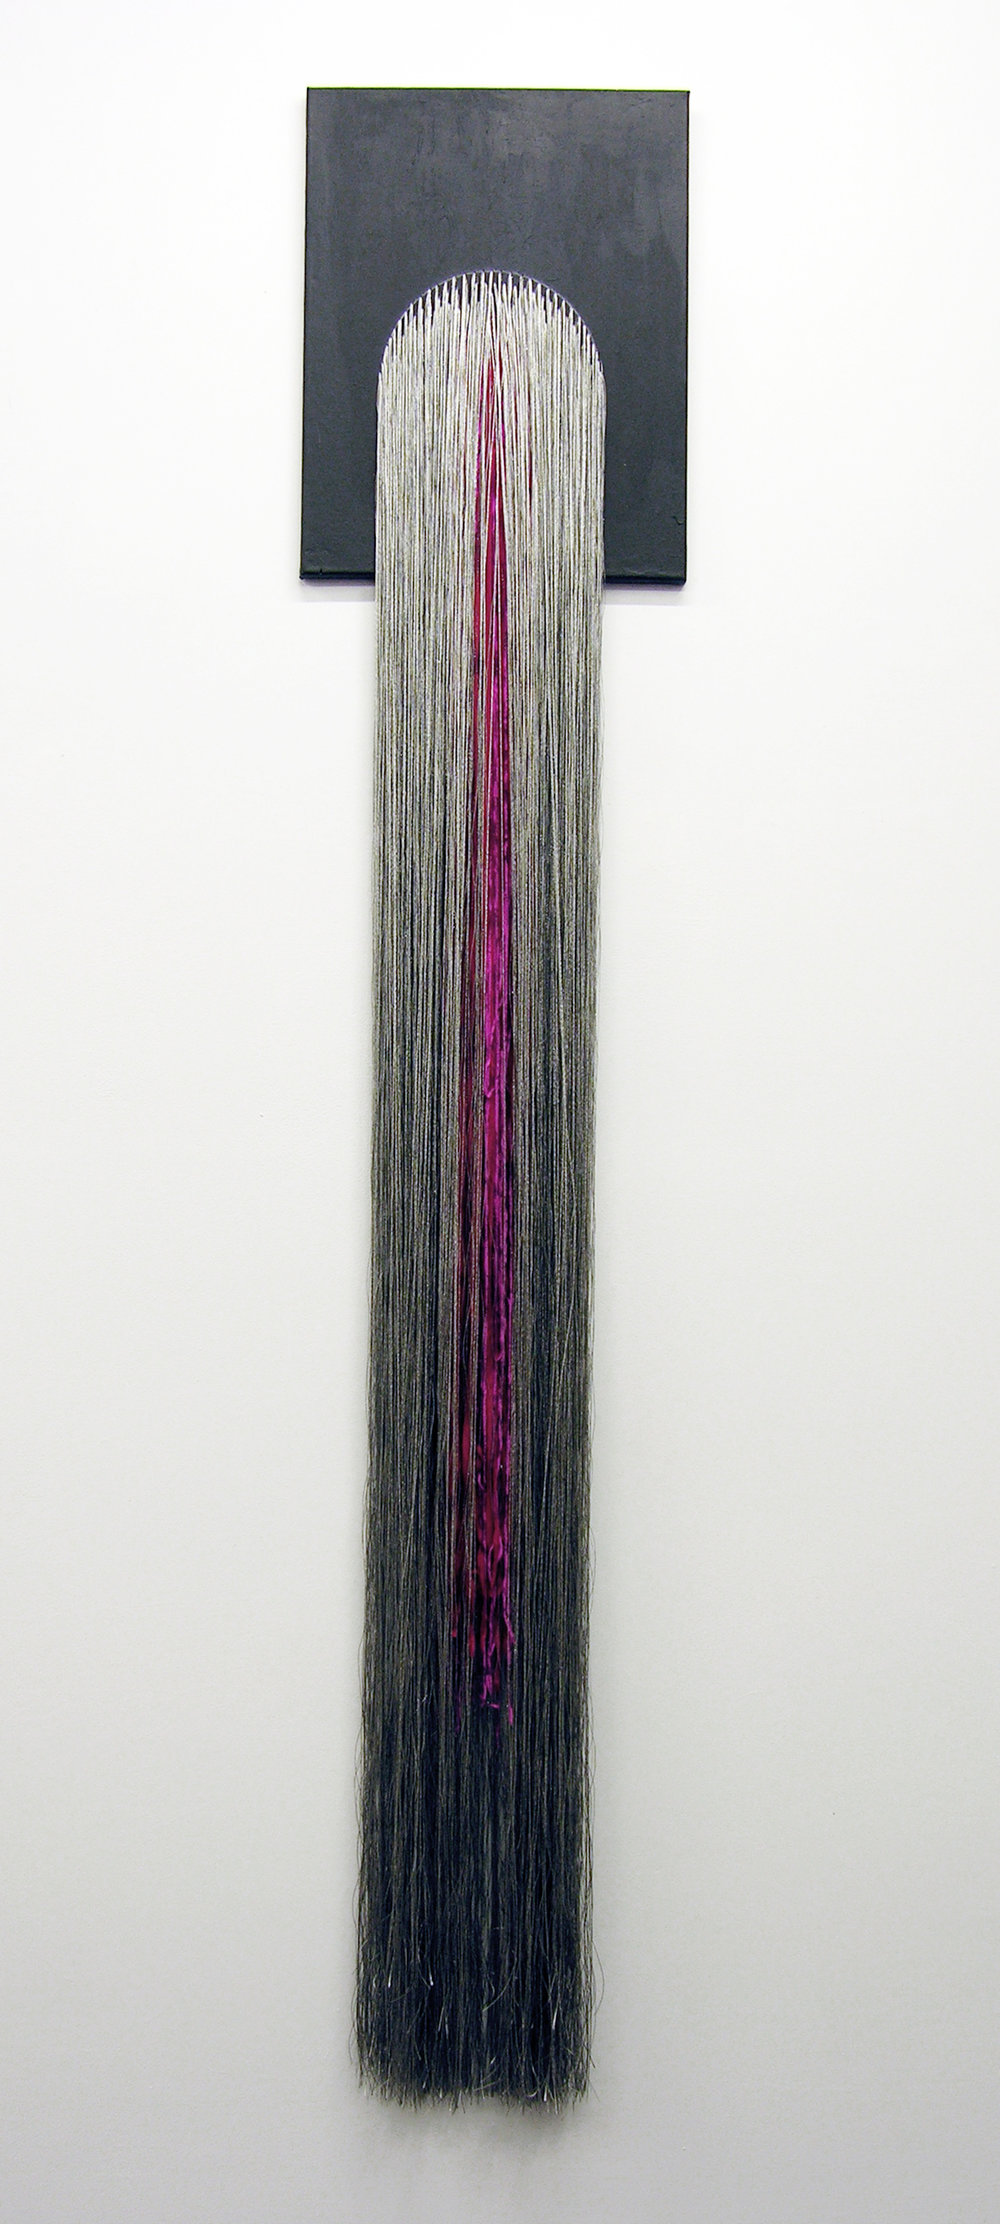 """Liz Collins, """"Spirit Spout"""" (2018) Acrylic on canvas with stitched rayon, PVC, lurex, and polyester yarns (16 x 95 inches)"""